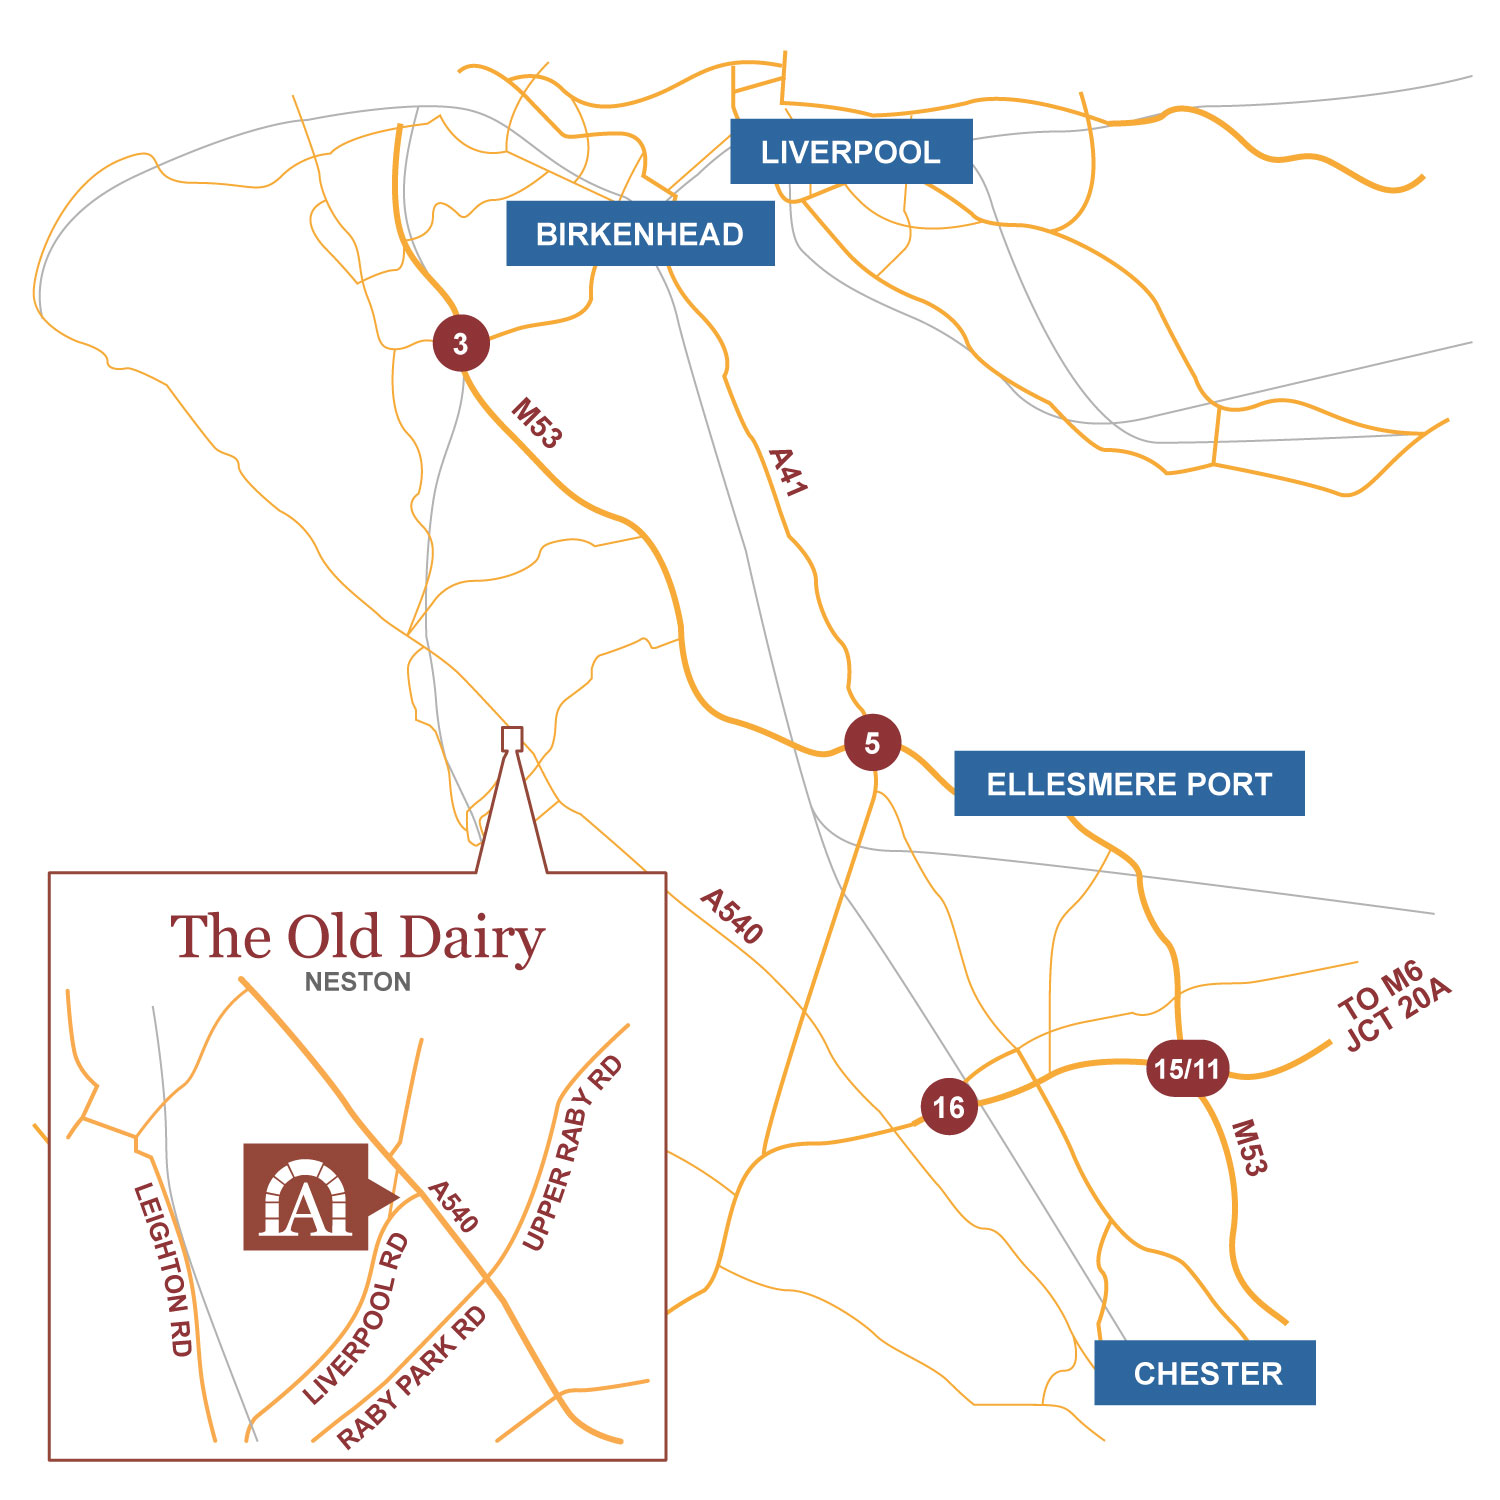 The Old Dairy location map